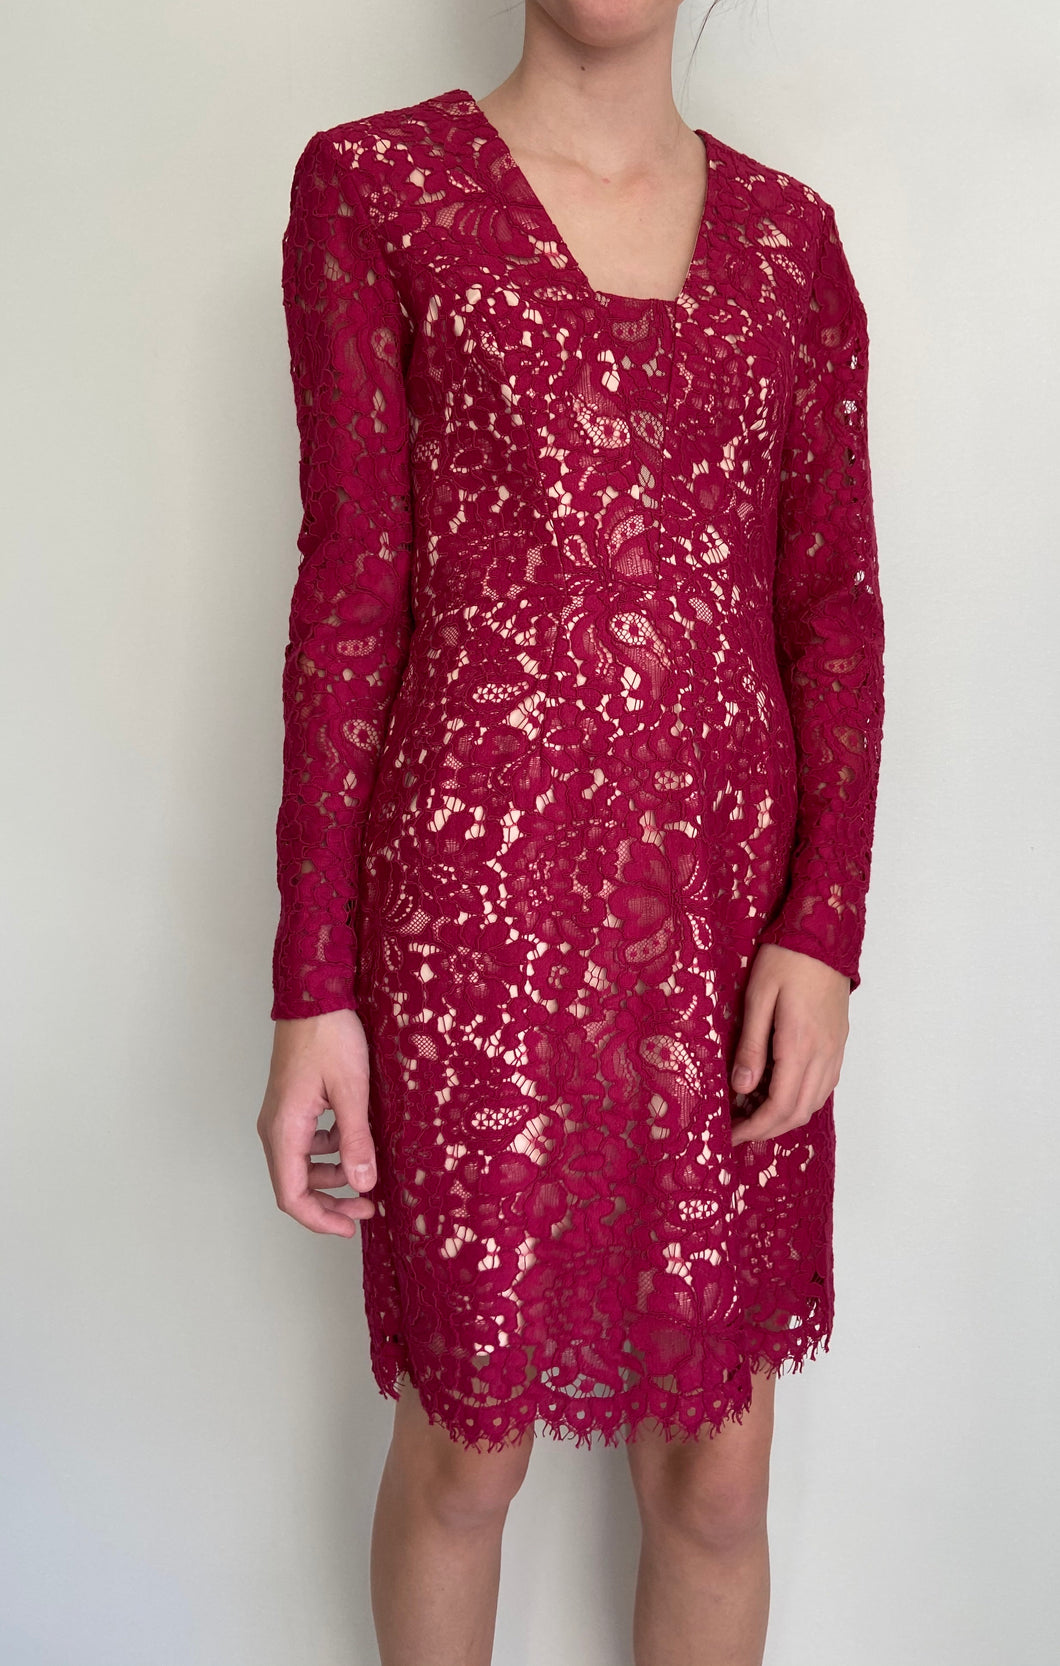 RODEO SHOW stunning wine coloured long sleeve lace pencil dress size 8 BNWT $369